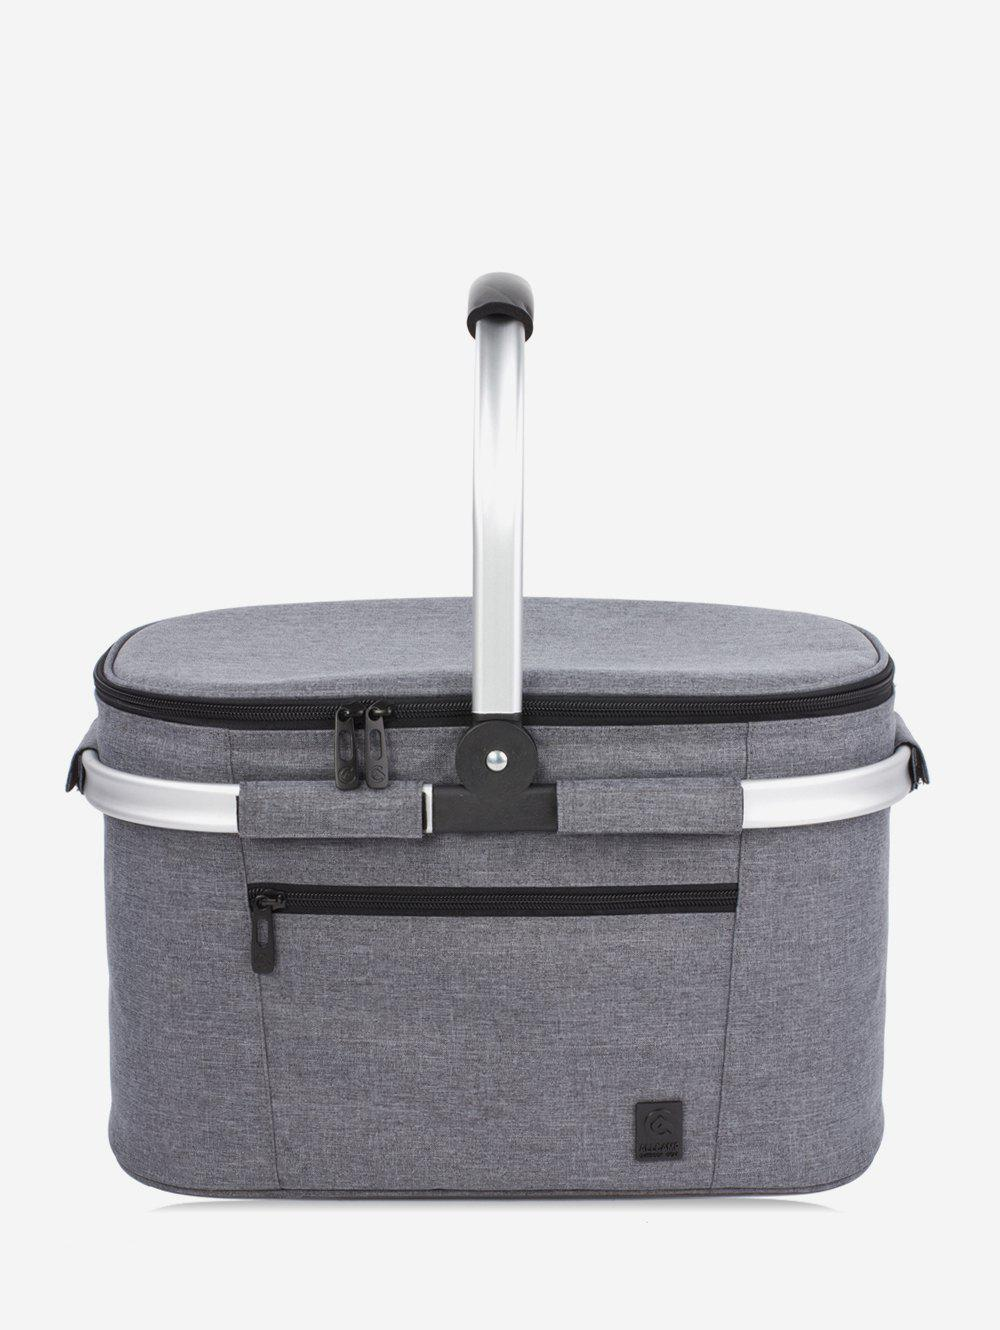 Store Outdoors Picnic Heat Preservation Bag